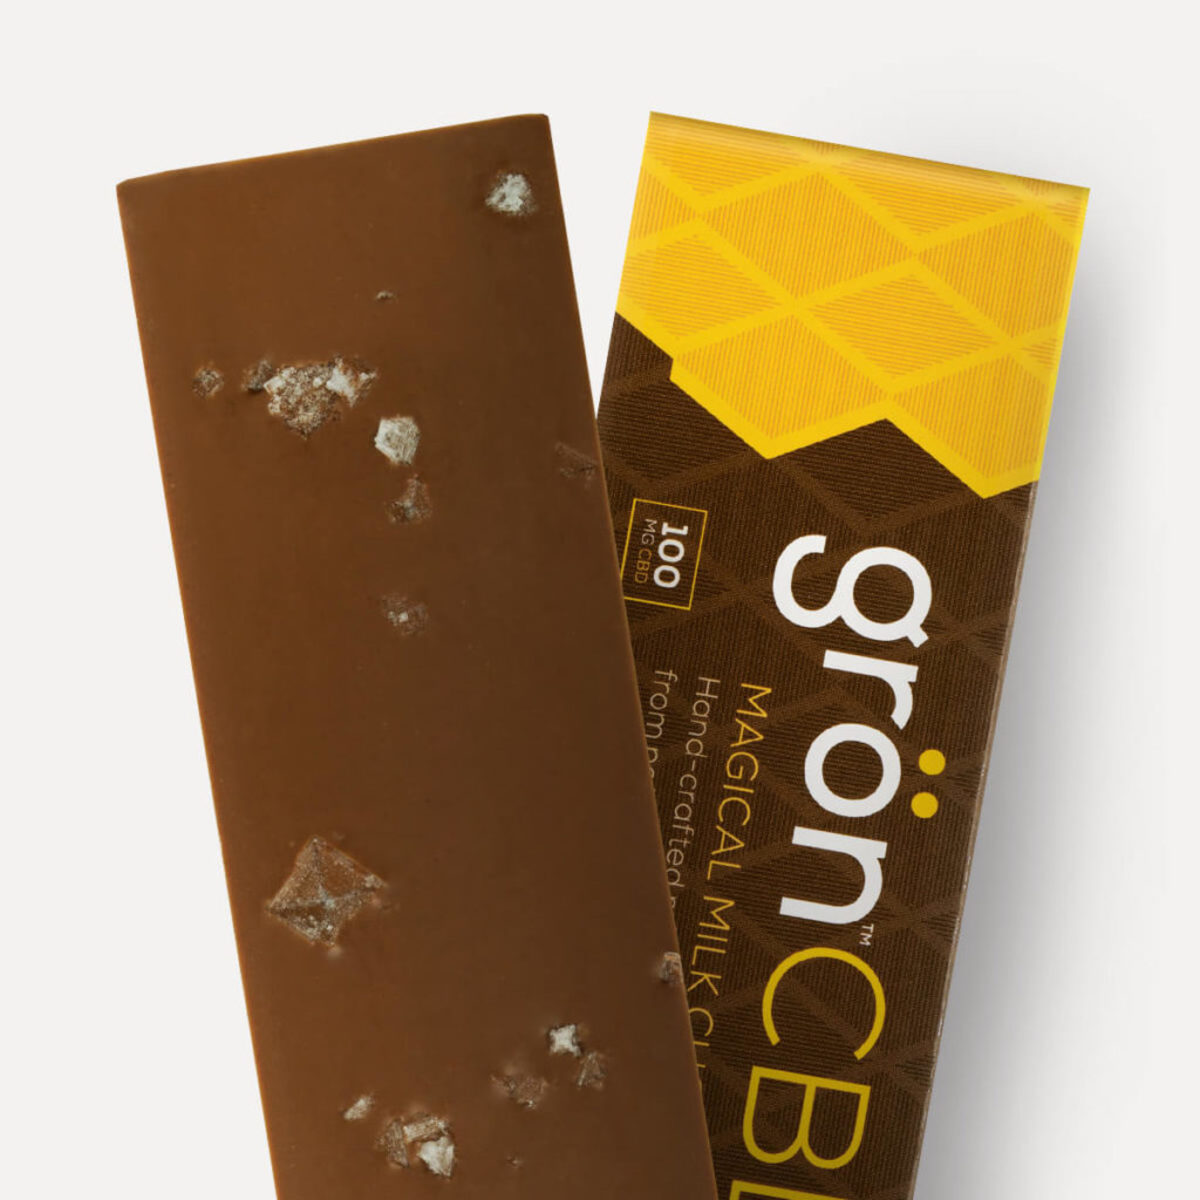 GronCBD Chocolate Bar